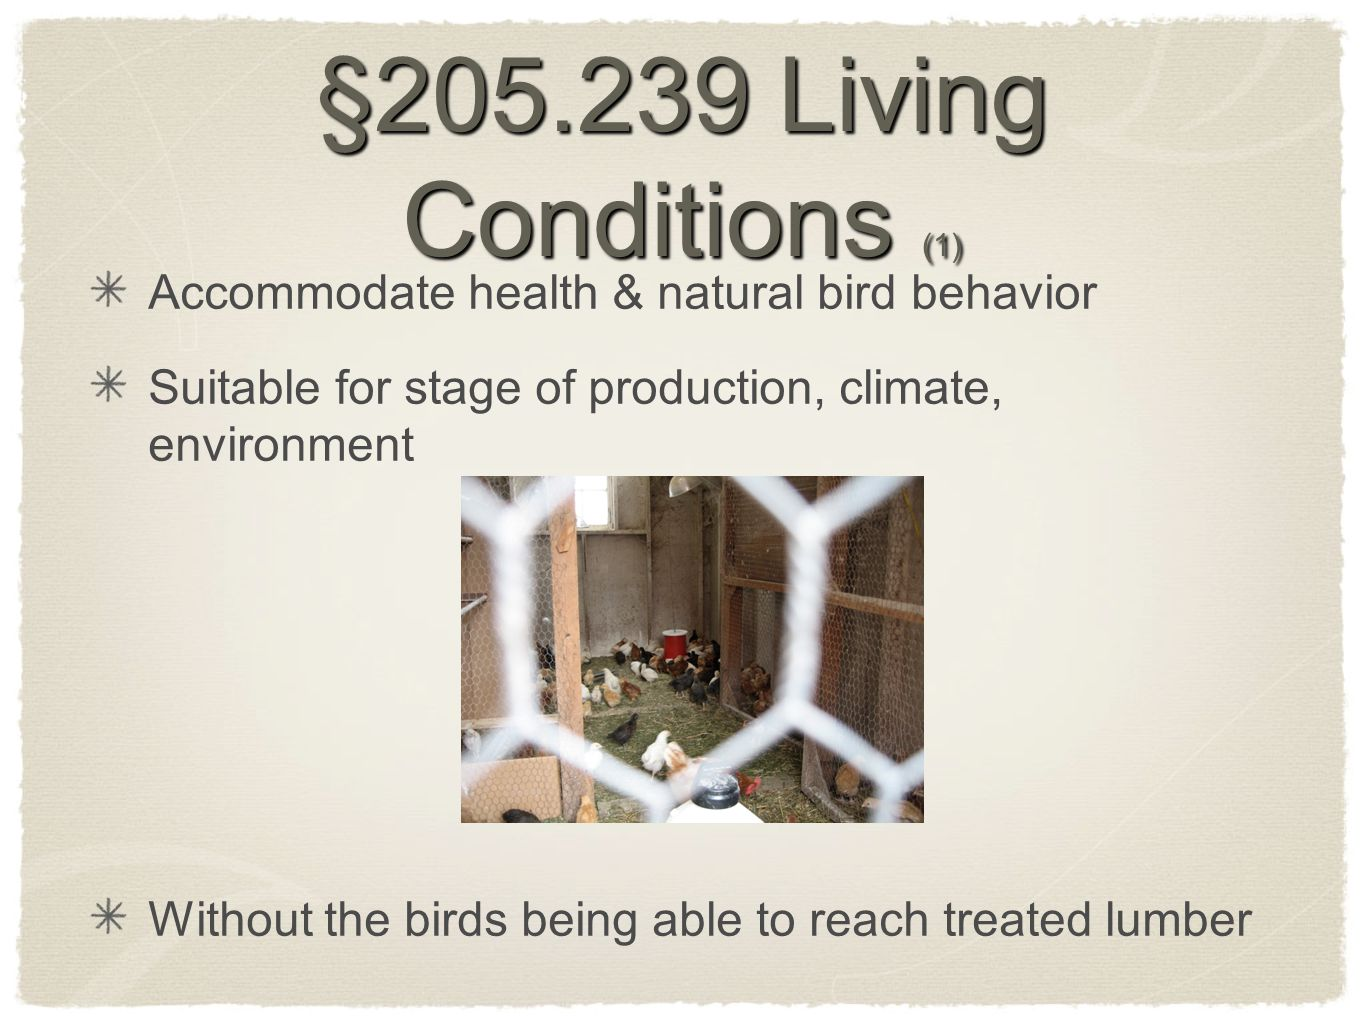 §205.239 Living Conditions (1) Accommodate health & natural bird behavior Suitable for stage of production, climate, environment Without the birds bei